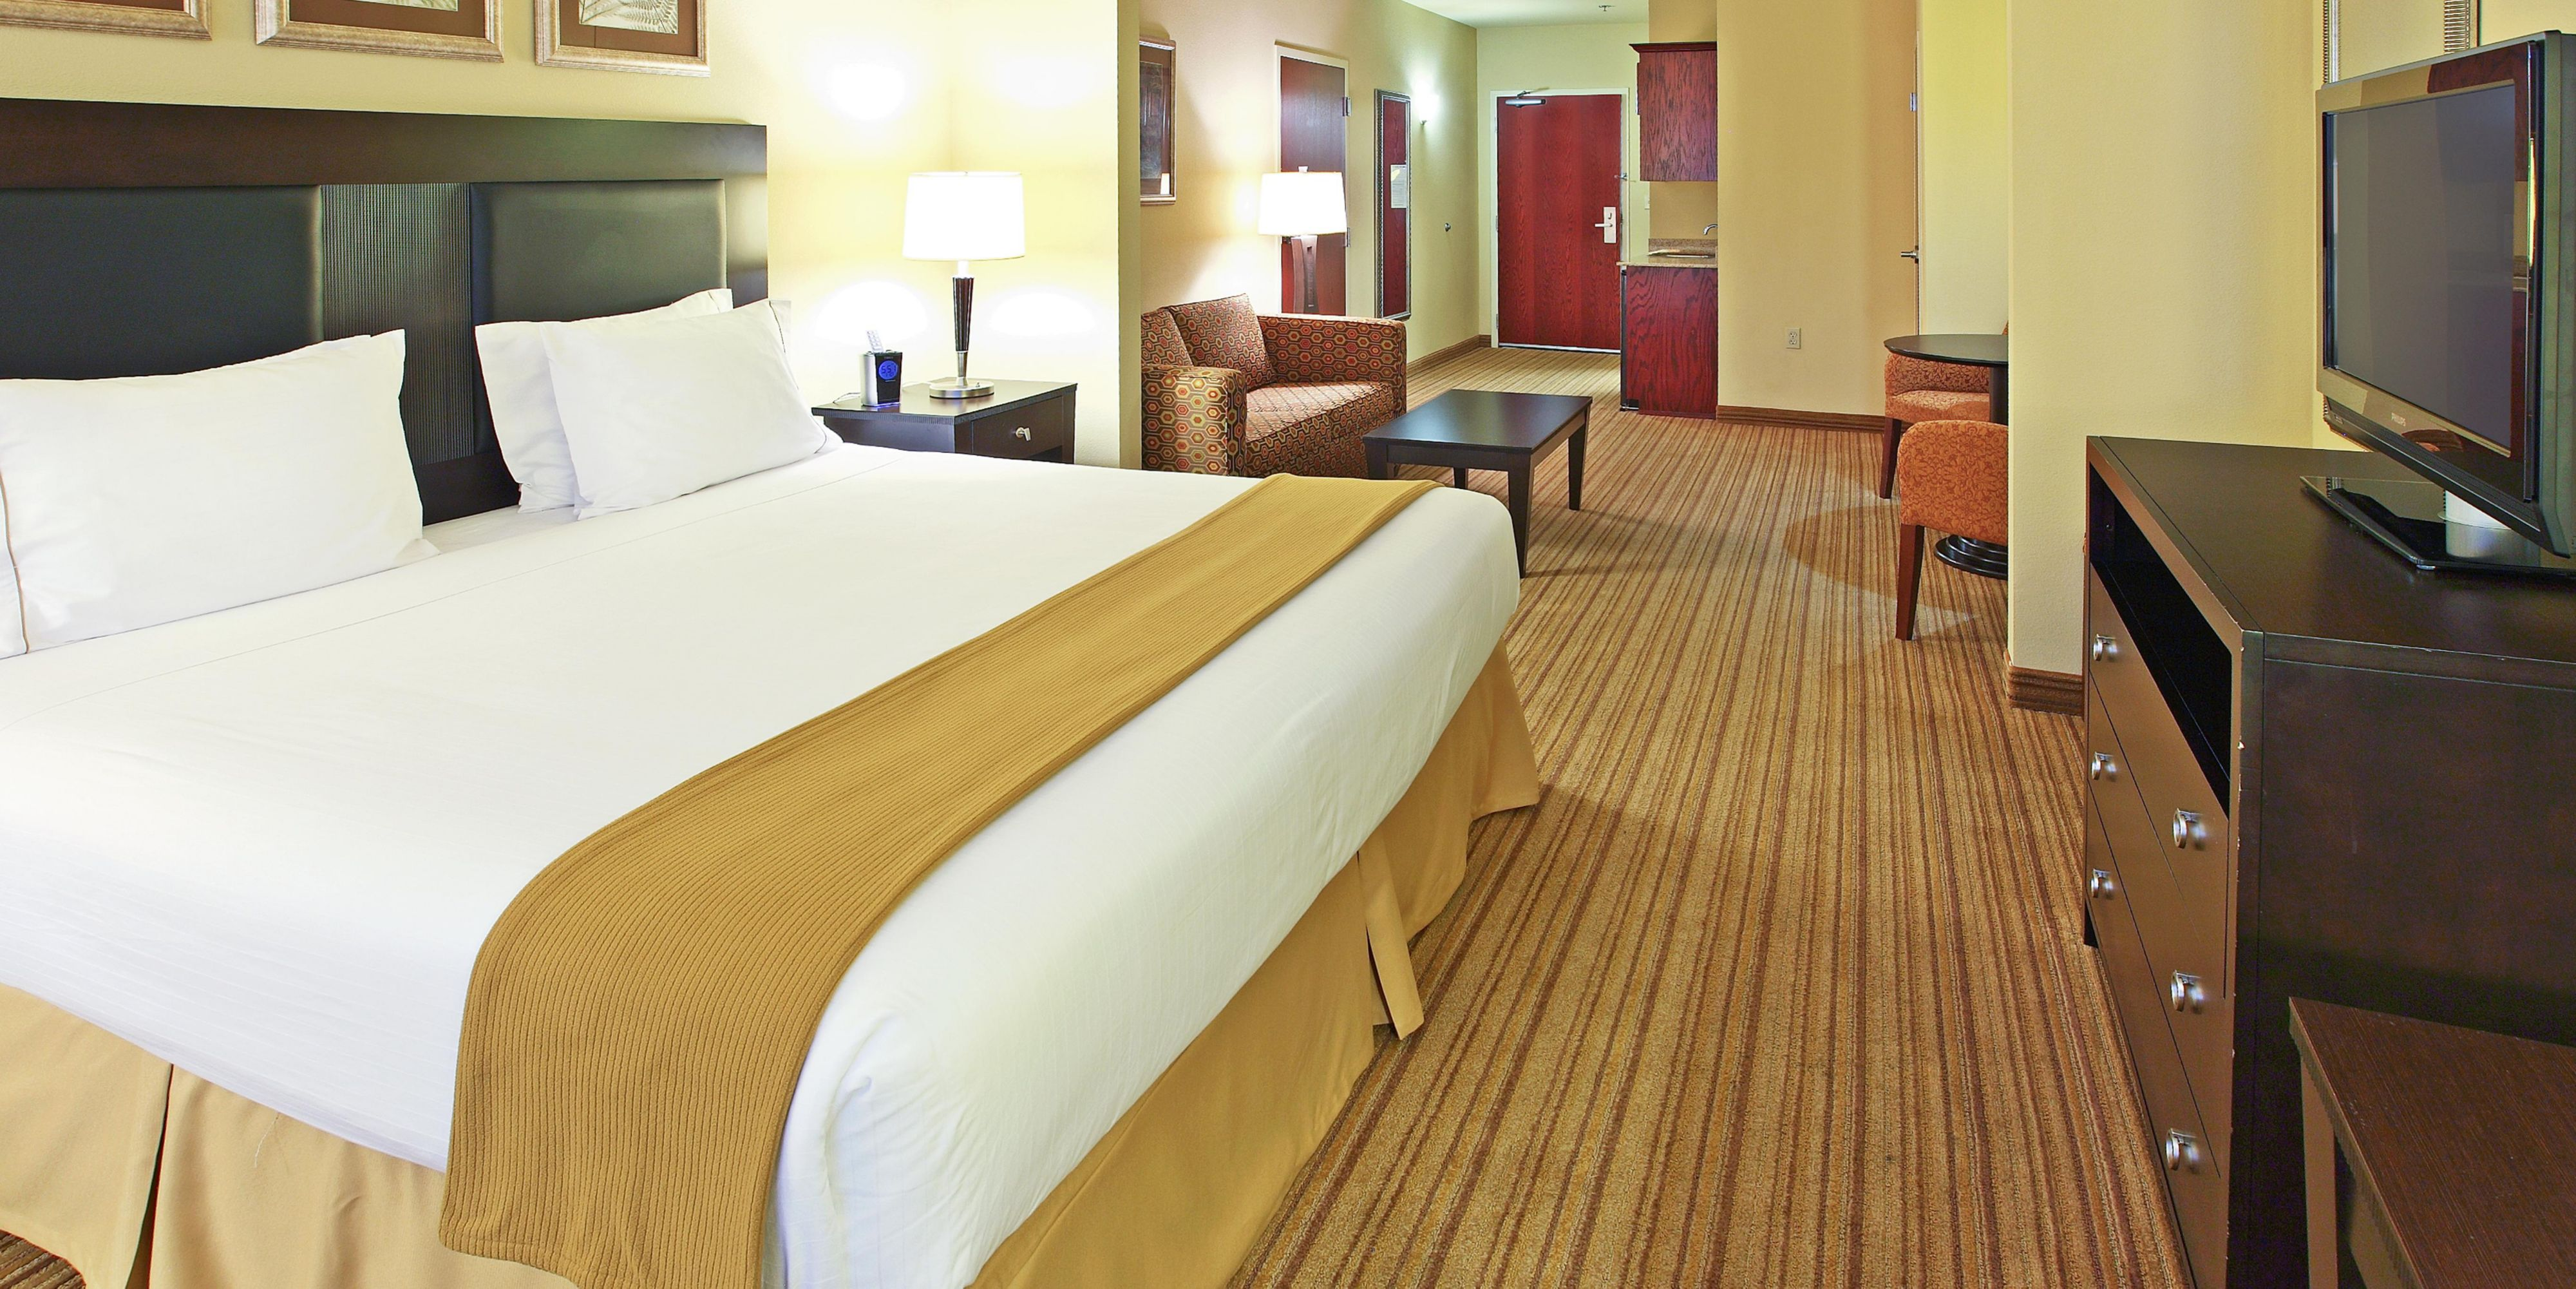 Honeymoon suites in shreveport la